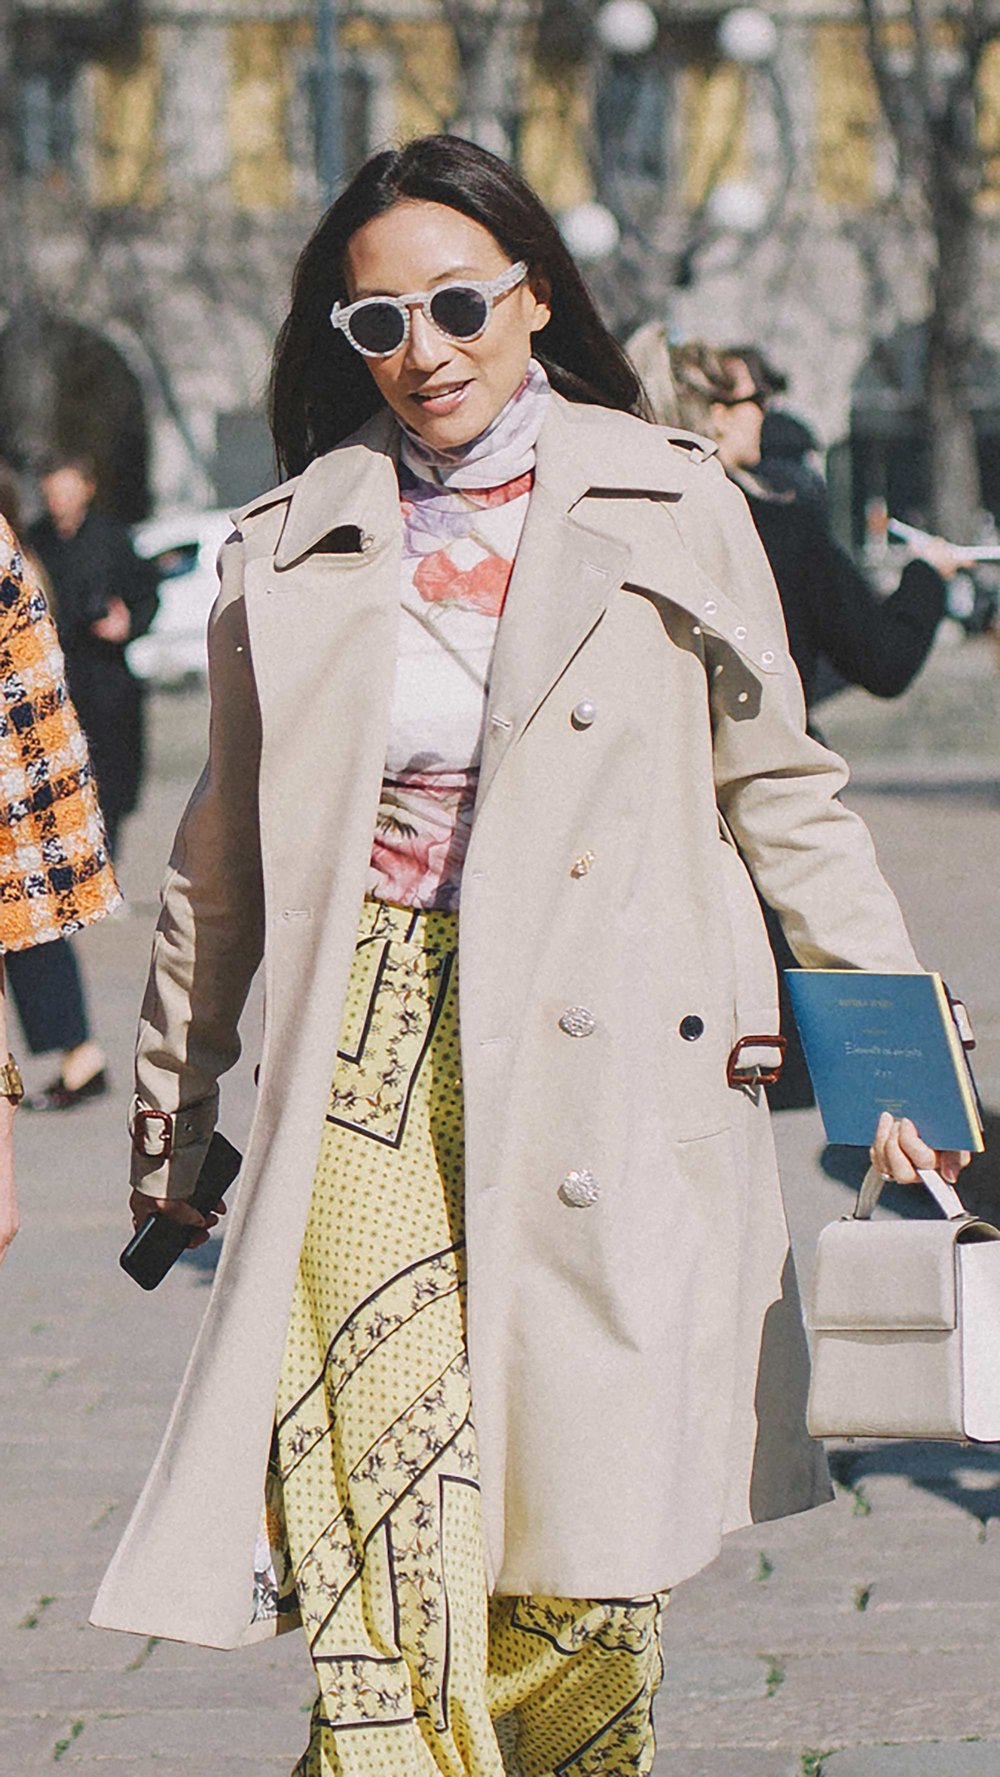 est outfits of Milan Fashion Week street style day two MFW FW19 35.jpg